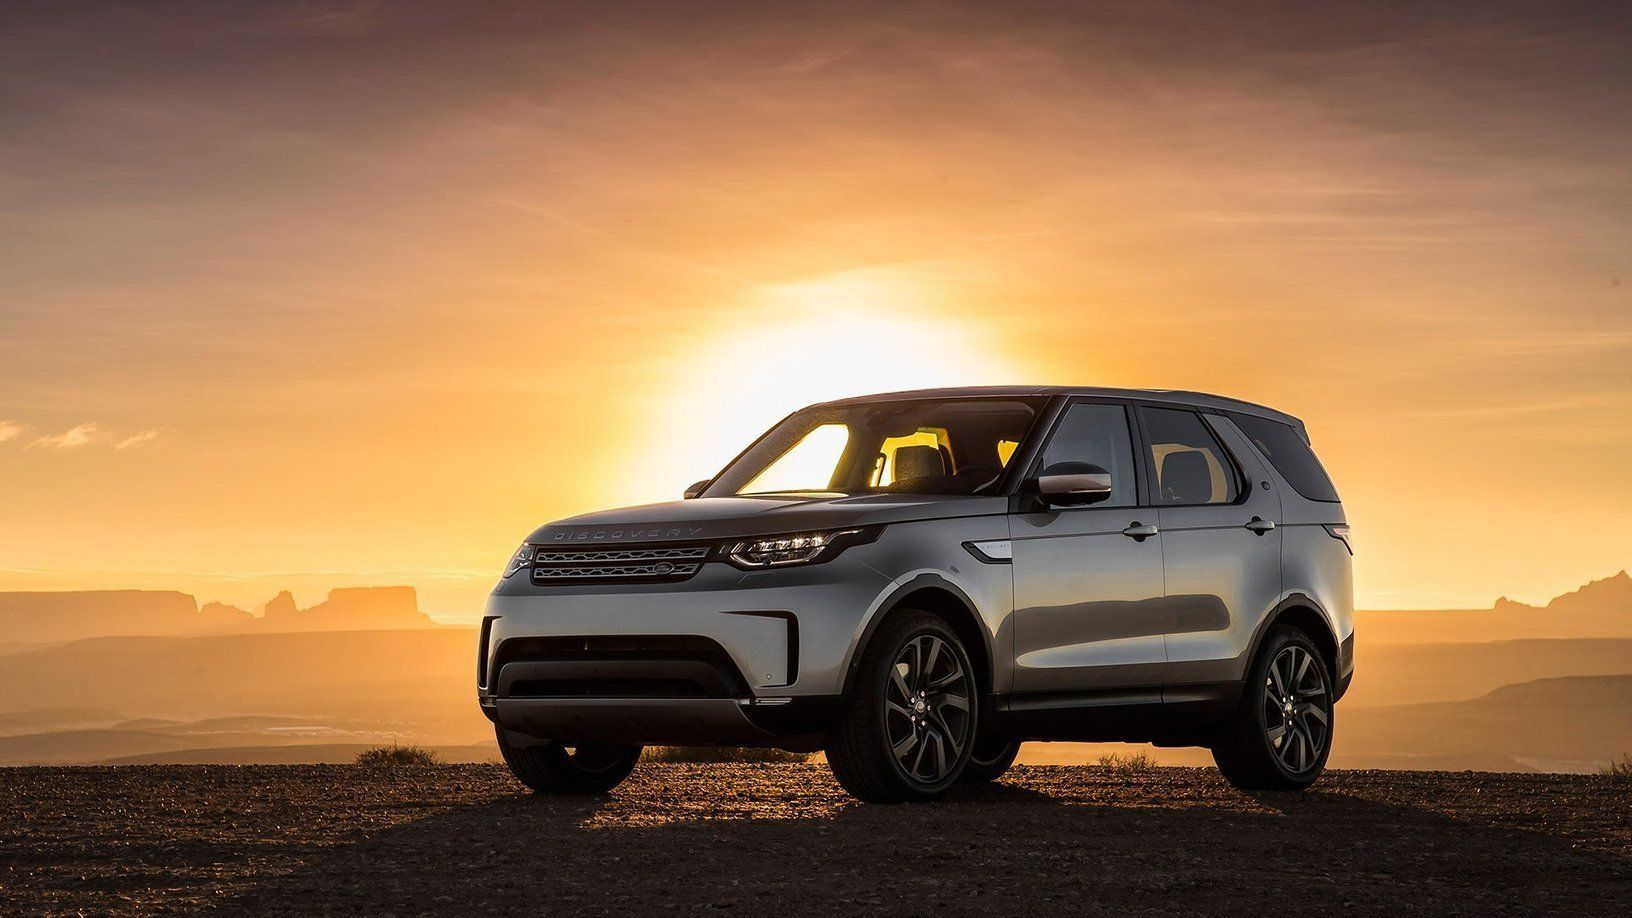 2017 LandRover Discovery HSE Luxury Review An SUV